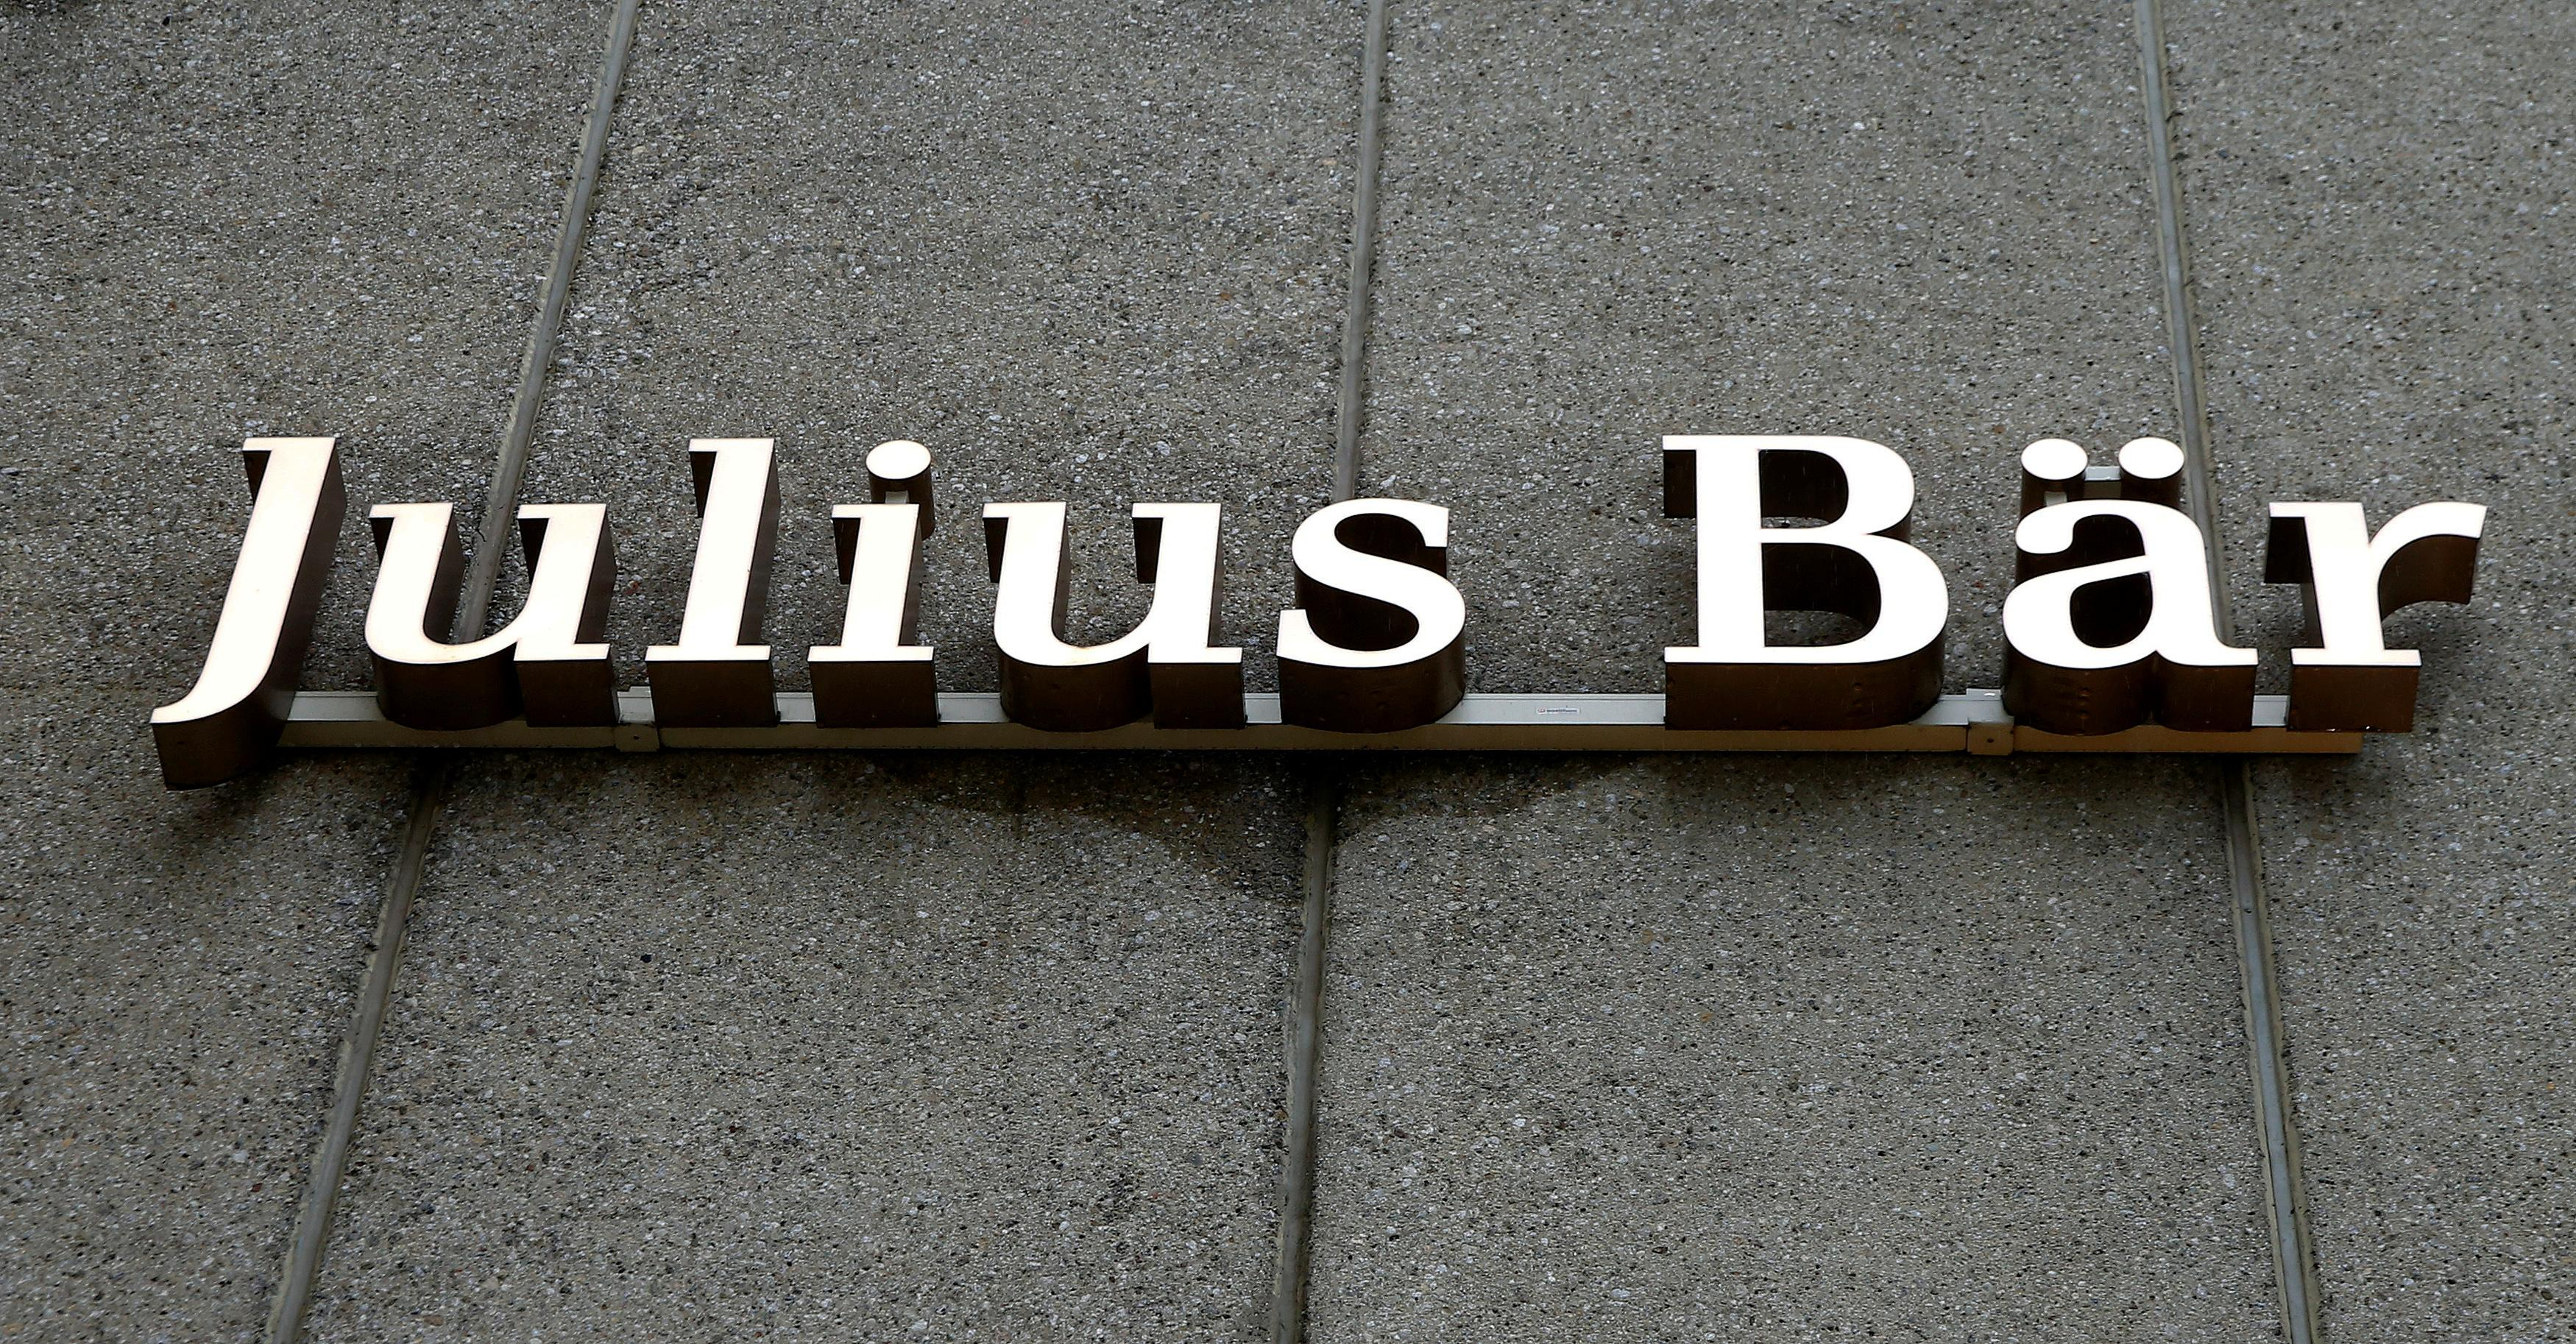 Swiss bank Julius Baer cuts executive board to 9 from 15